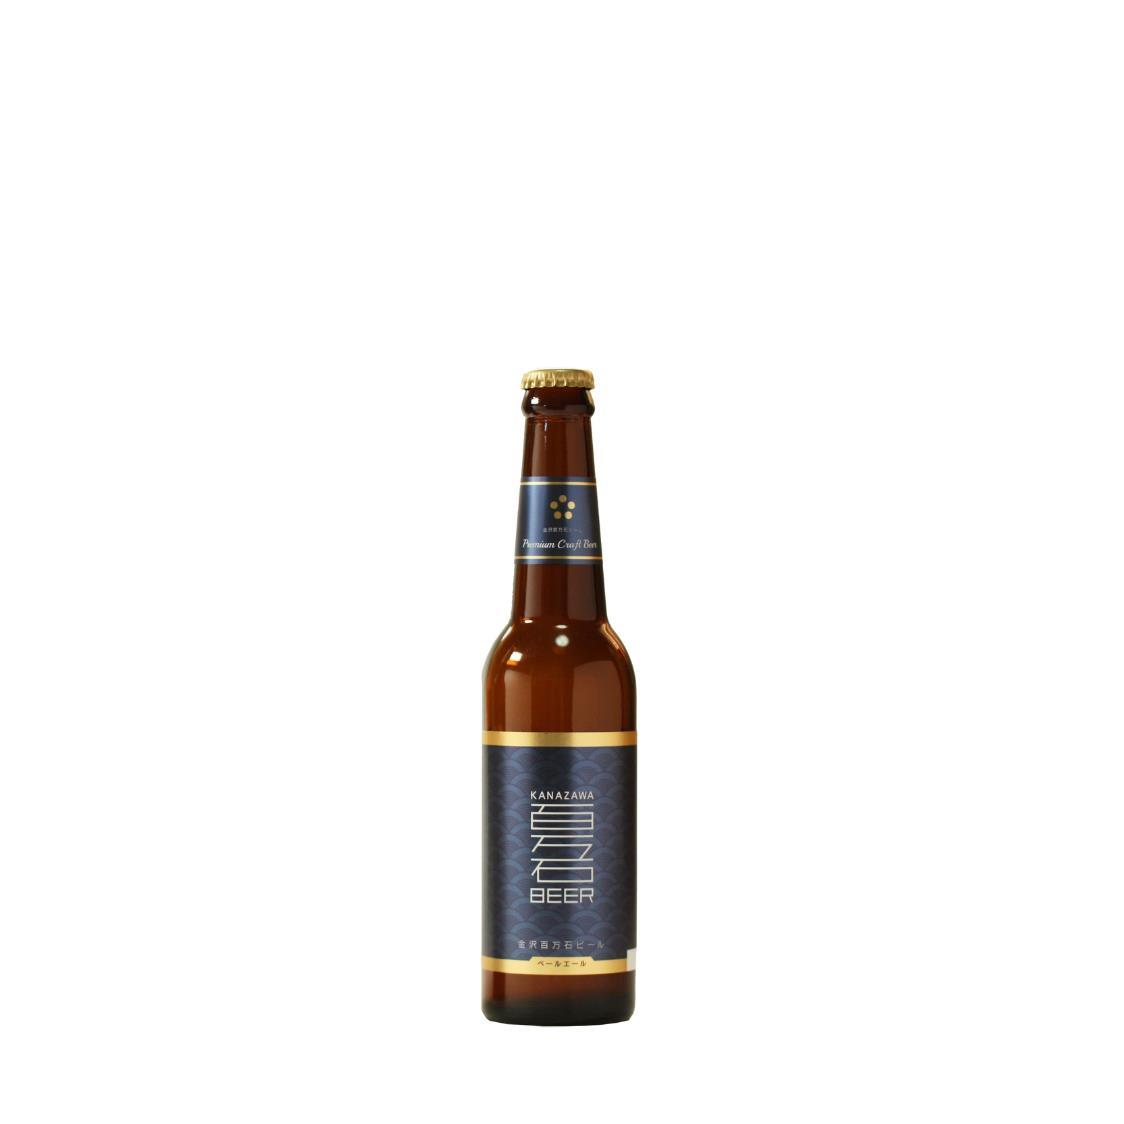 Waku Waku Beer Pale Ale 330ml